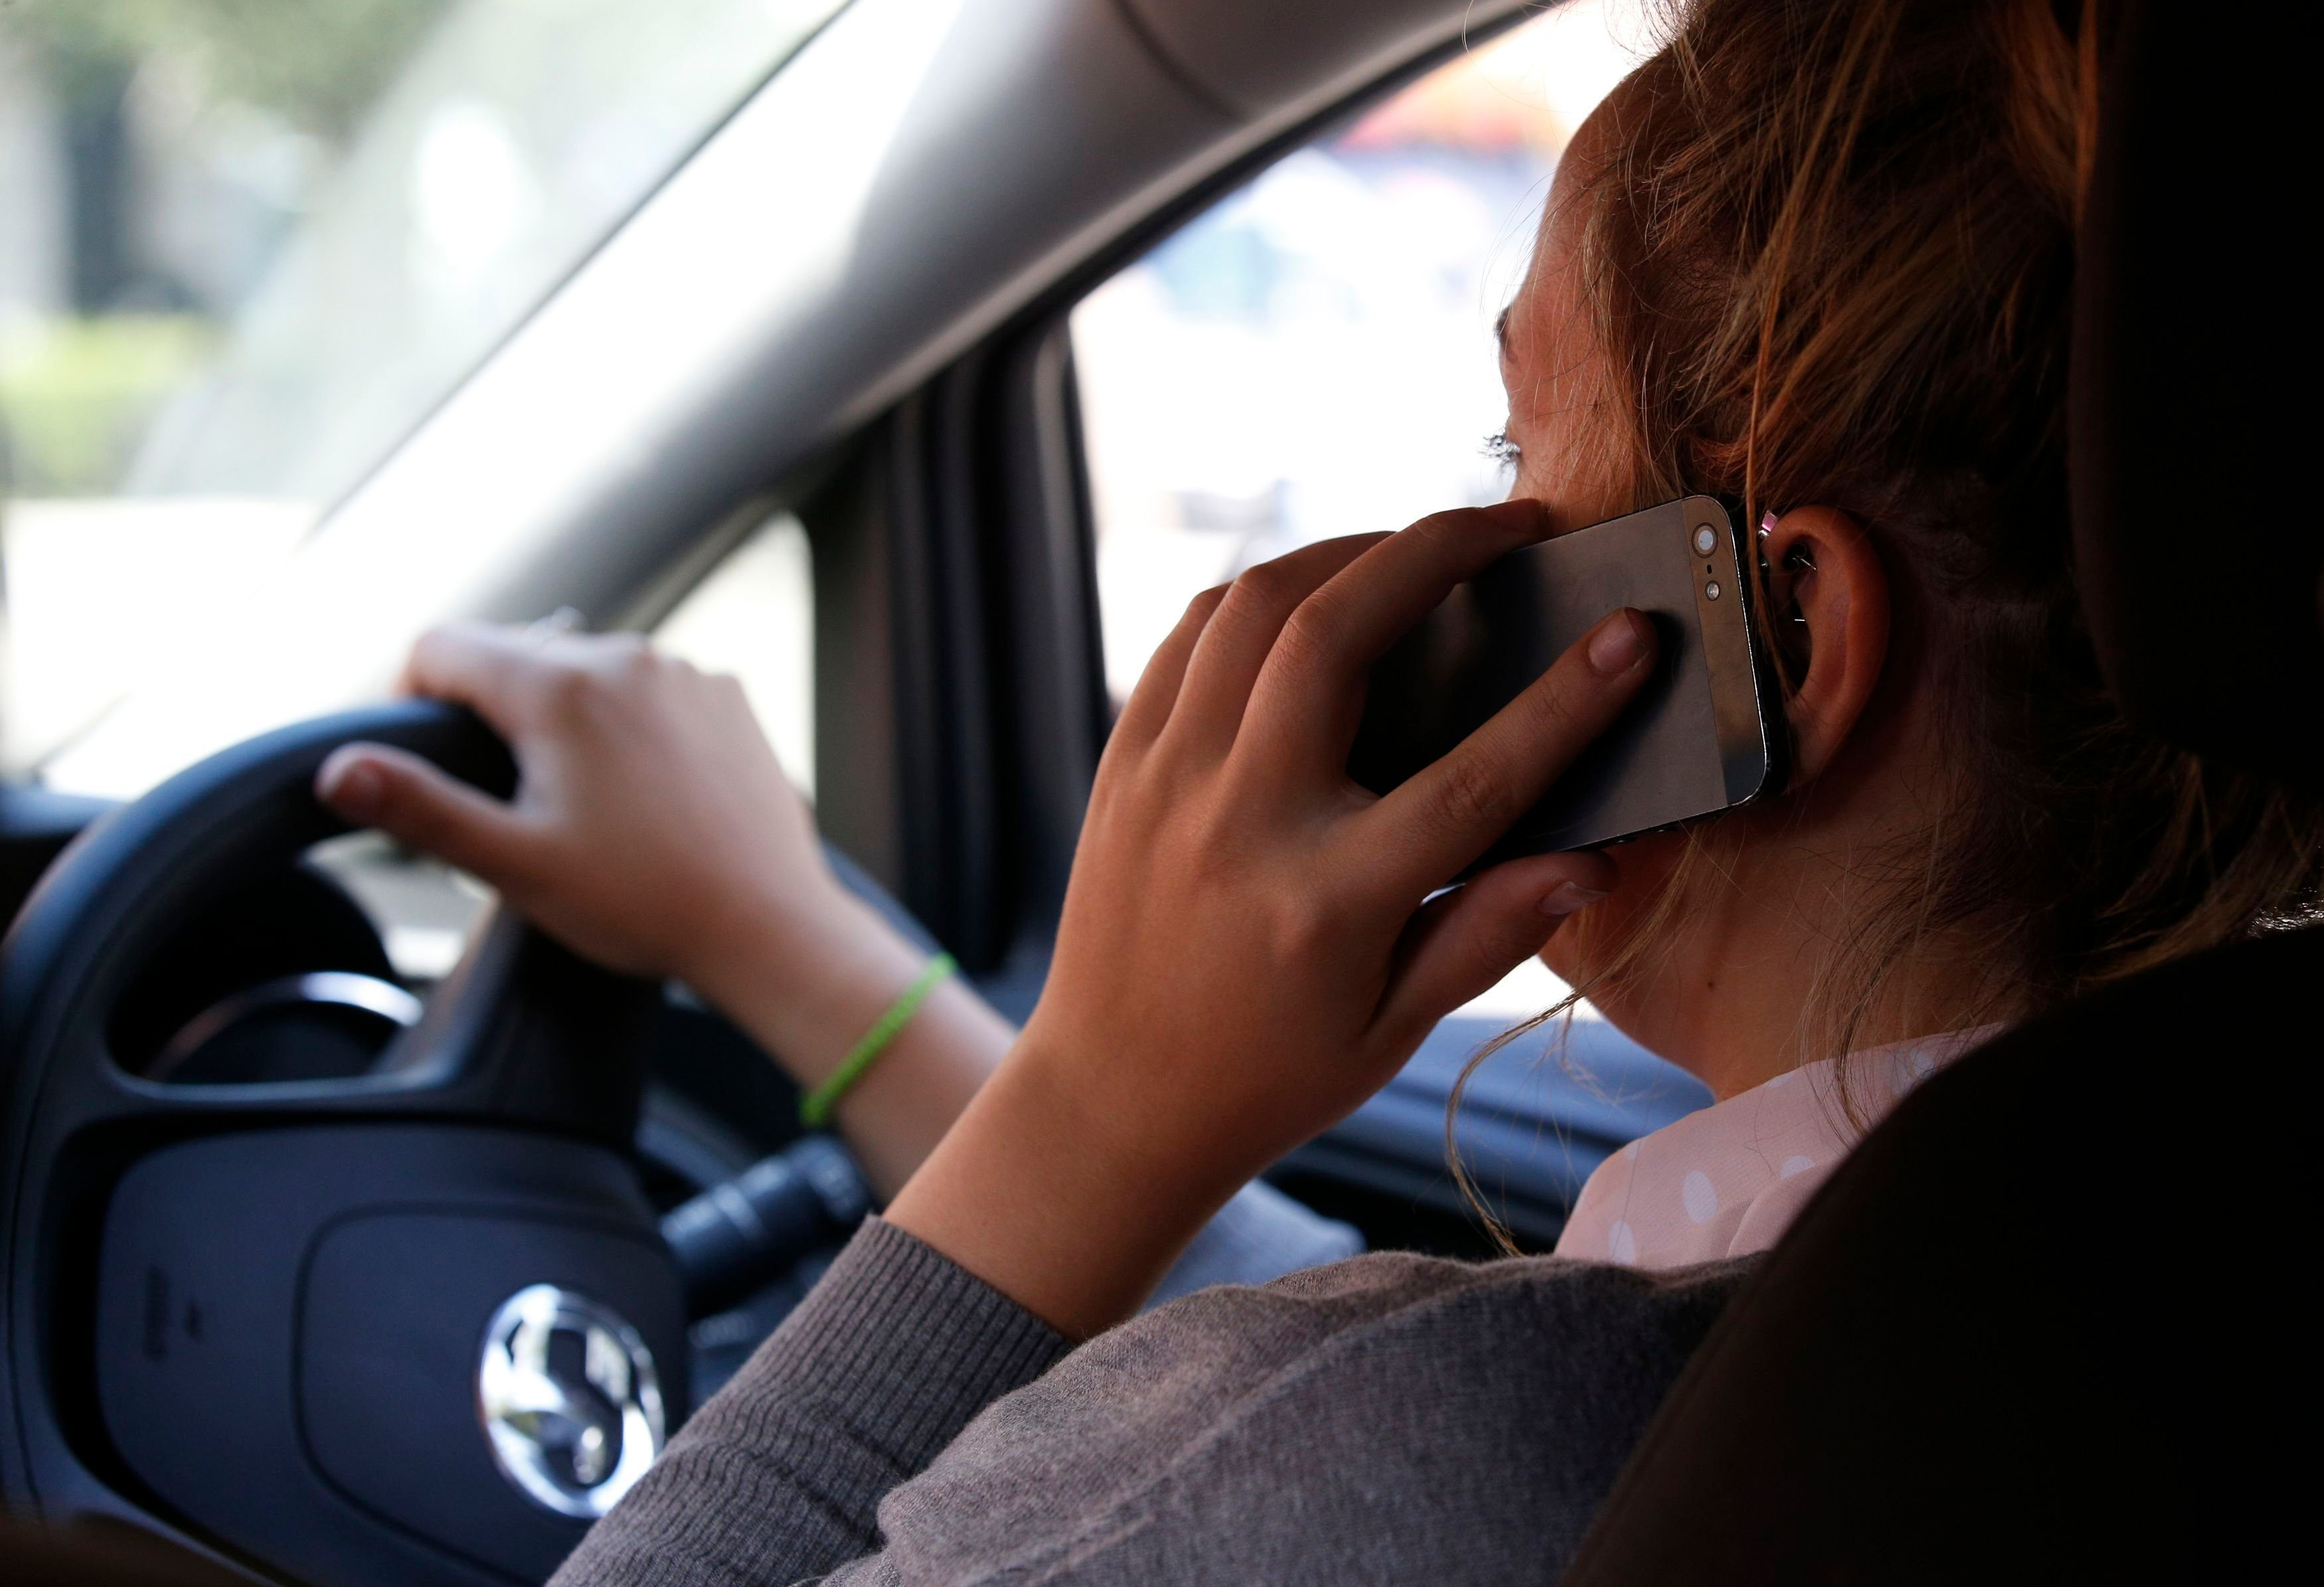 A Text Could Cost Your Licence As Punishments For Phone Use While Driving